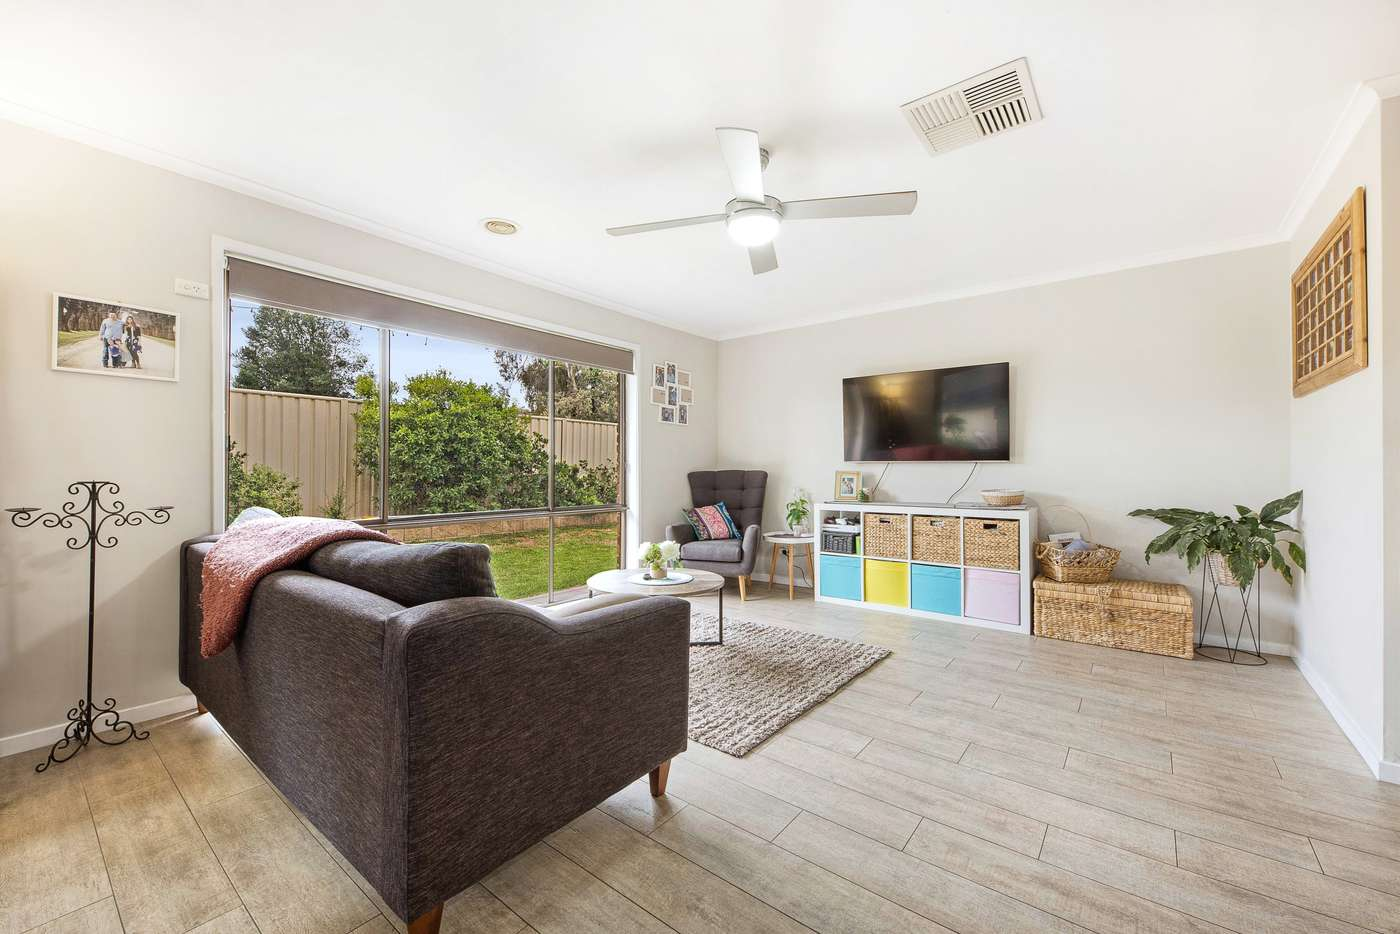 Fifth view of Homely house listing, 5 Skipton Ct, Wodonga VIC 3690